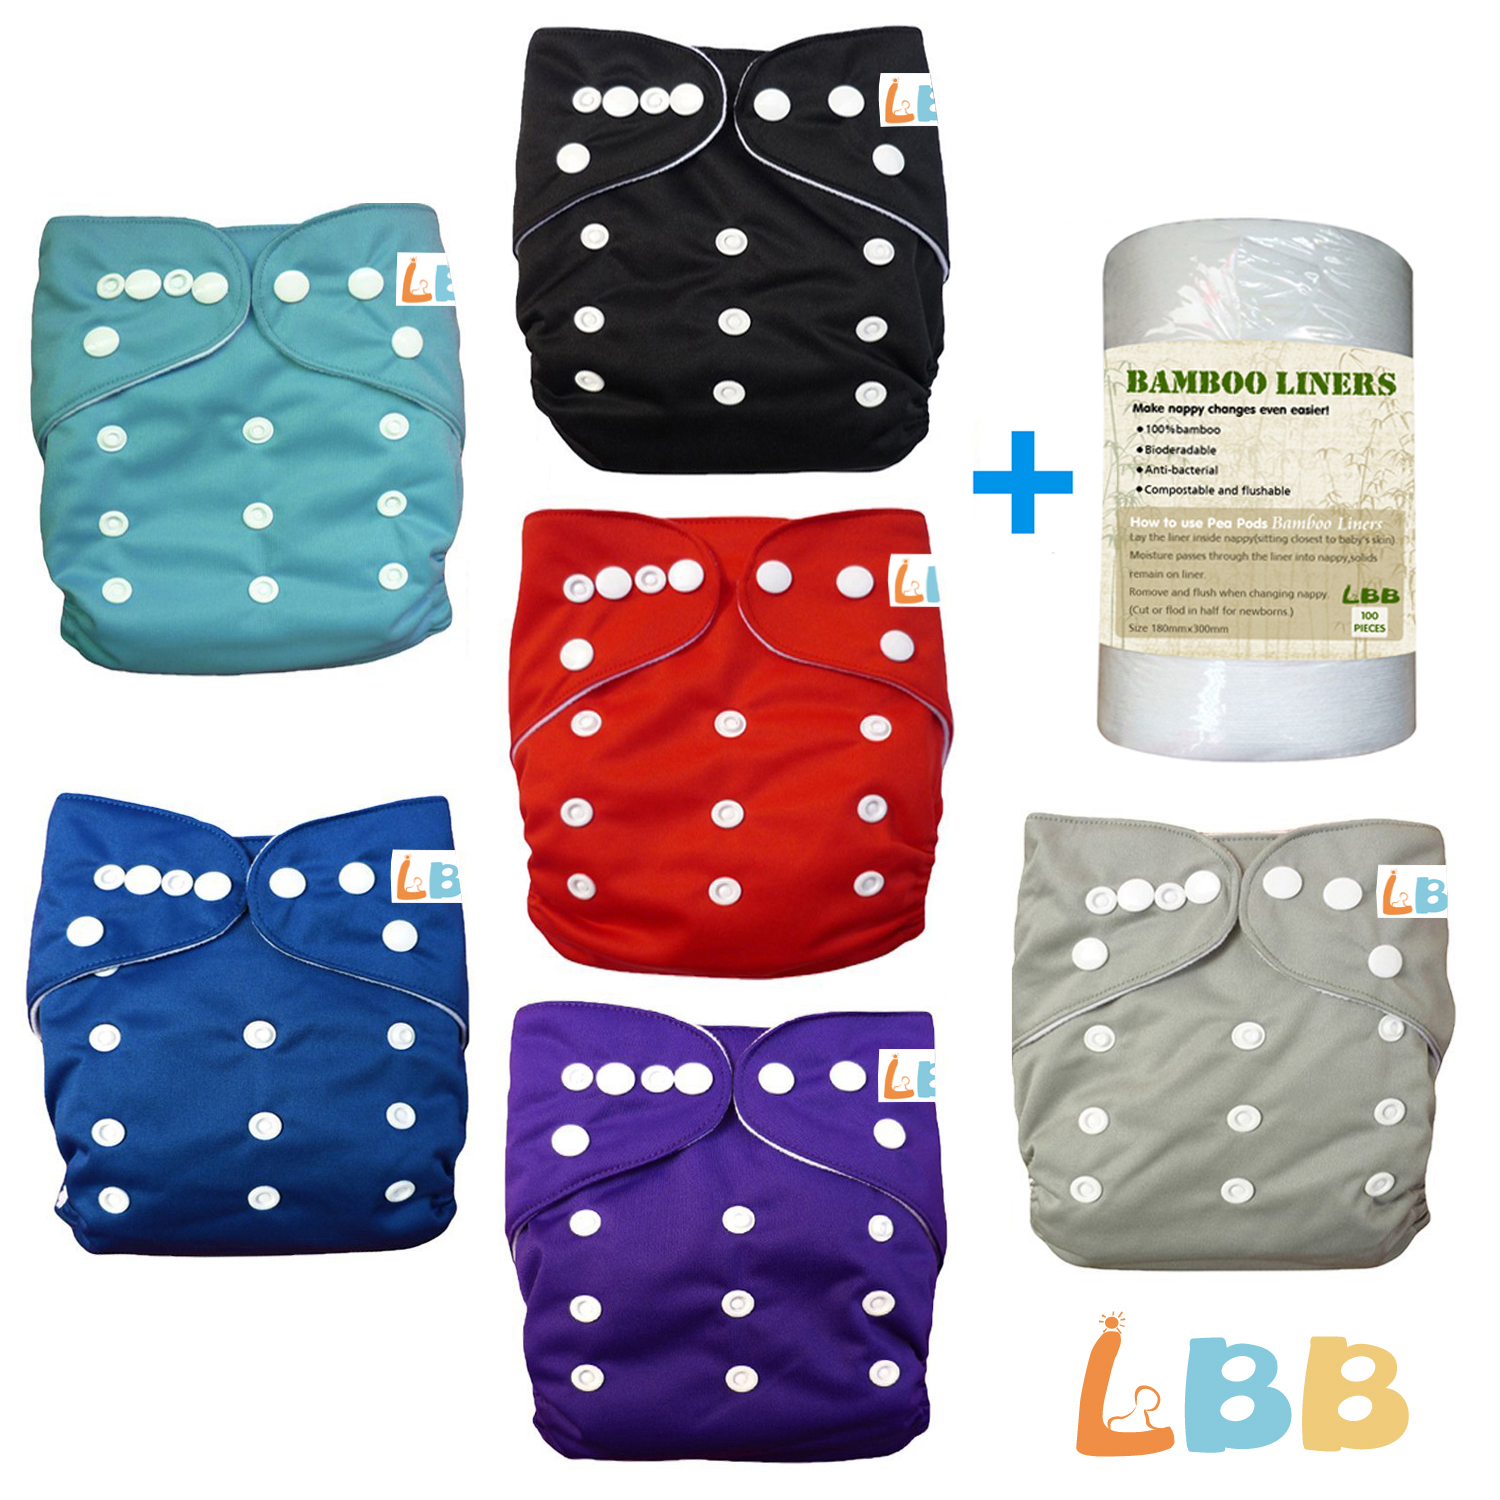 LBB(TM) Baby 6pcs+1 roll of liner Pack Pocket Adjustable Cloth Diaper?(Boy Color) 6BM99